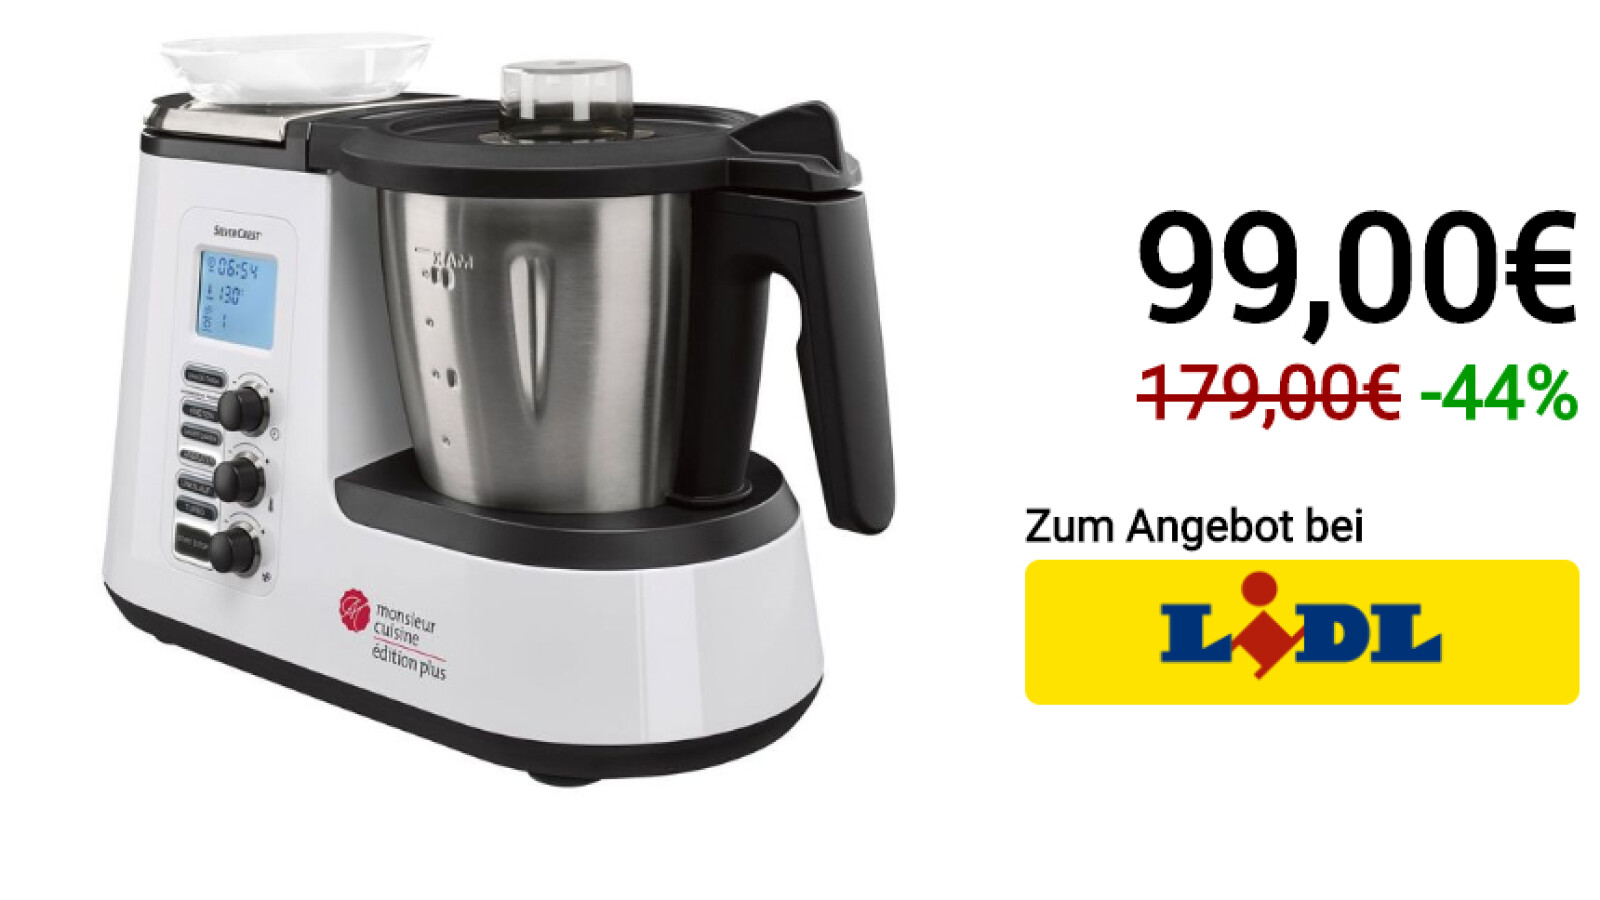 Lidl S Monsieur Cuisine Plus Costs 99 Euros Is It Worth Buying Igamesnews